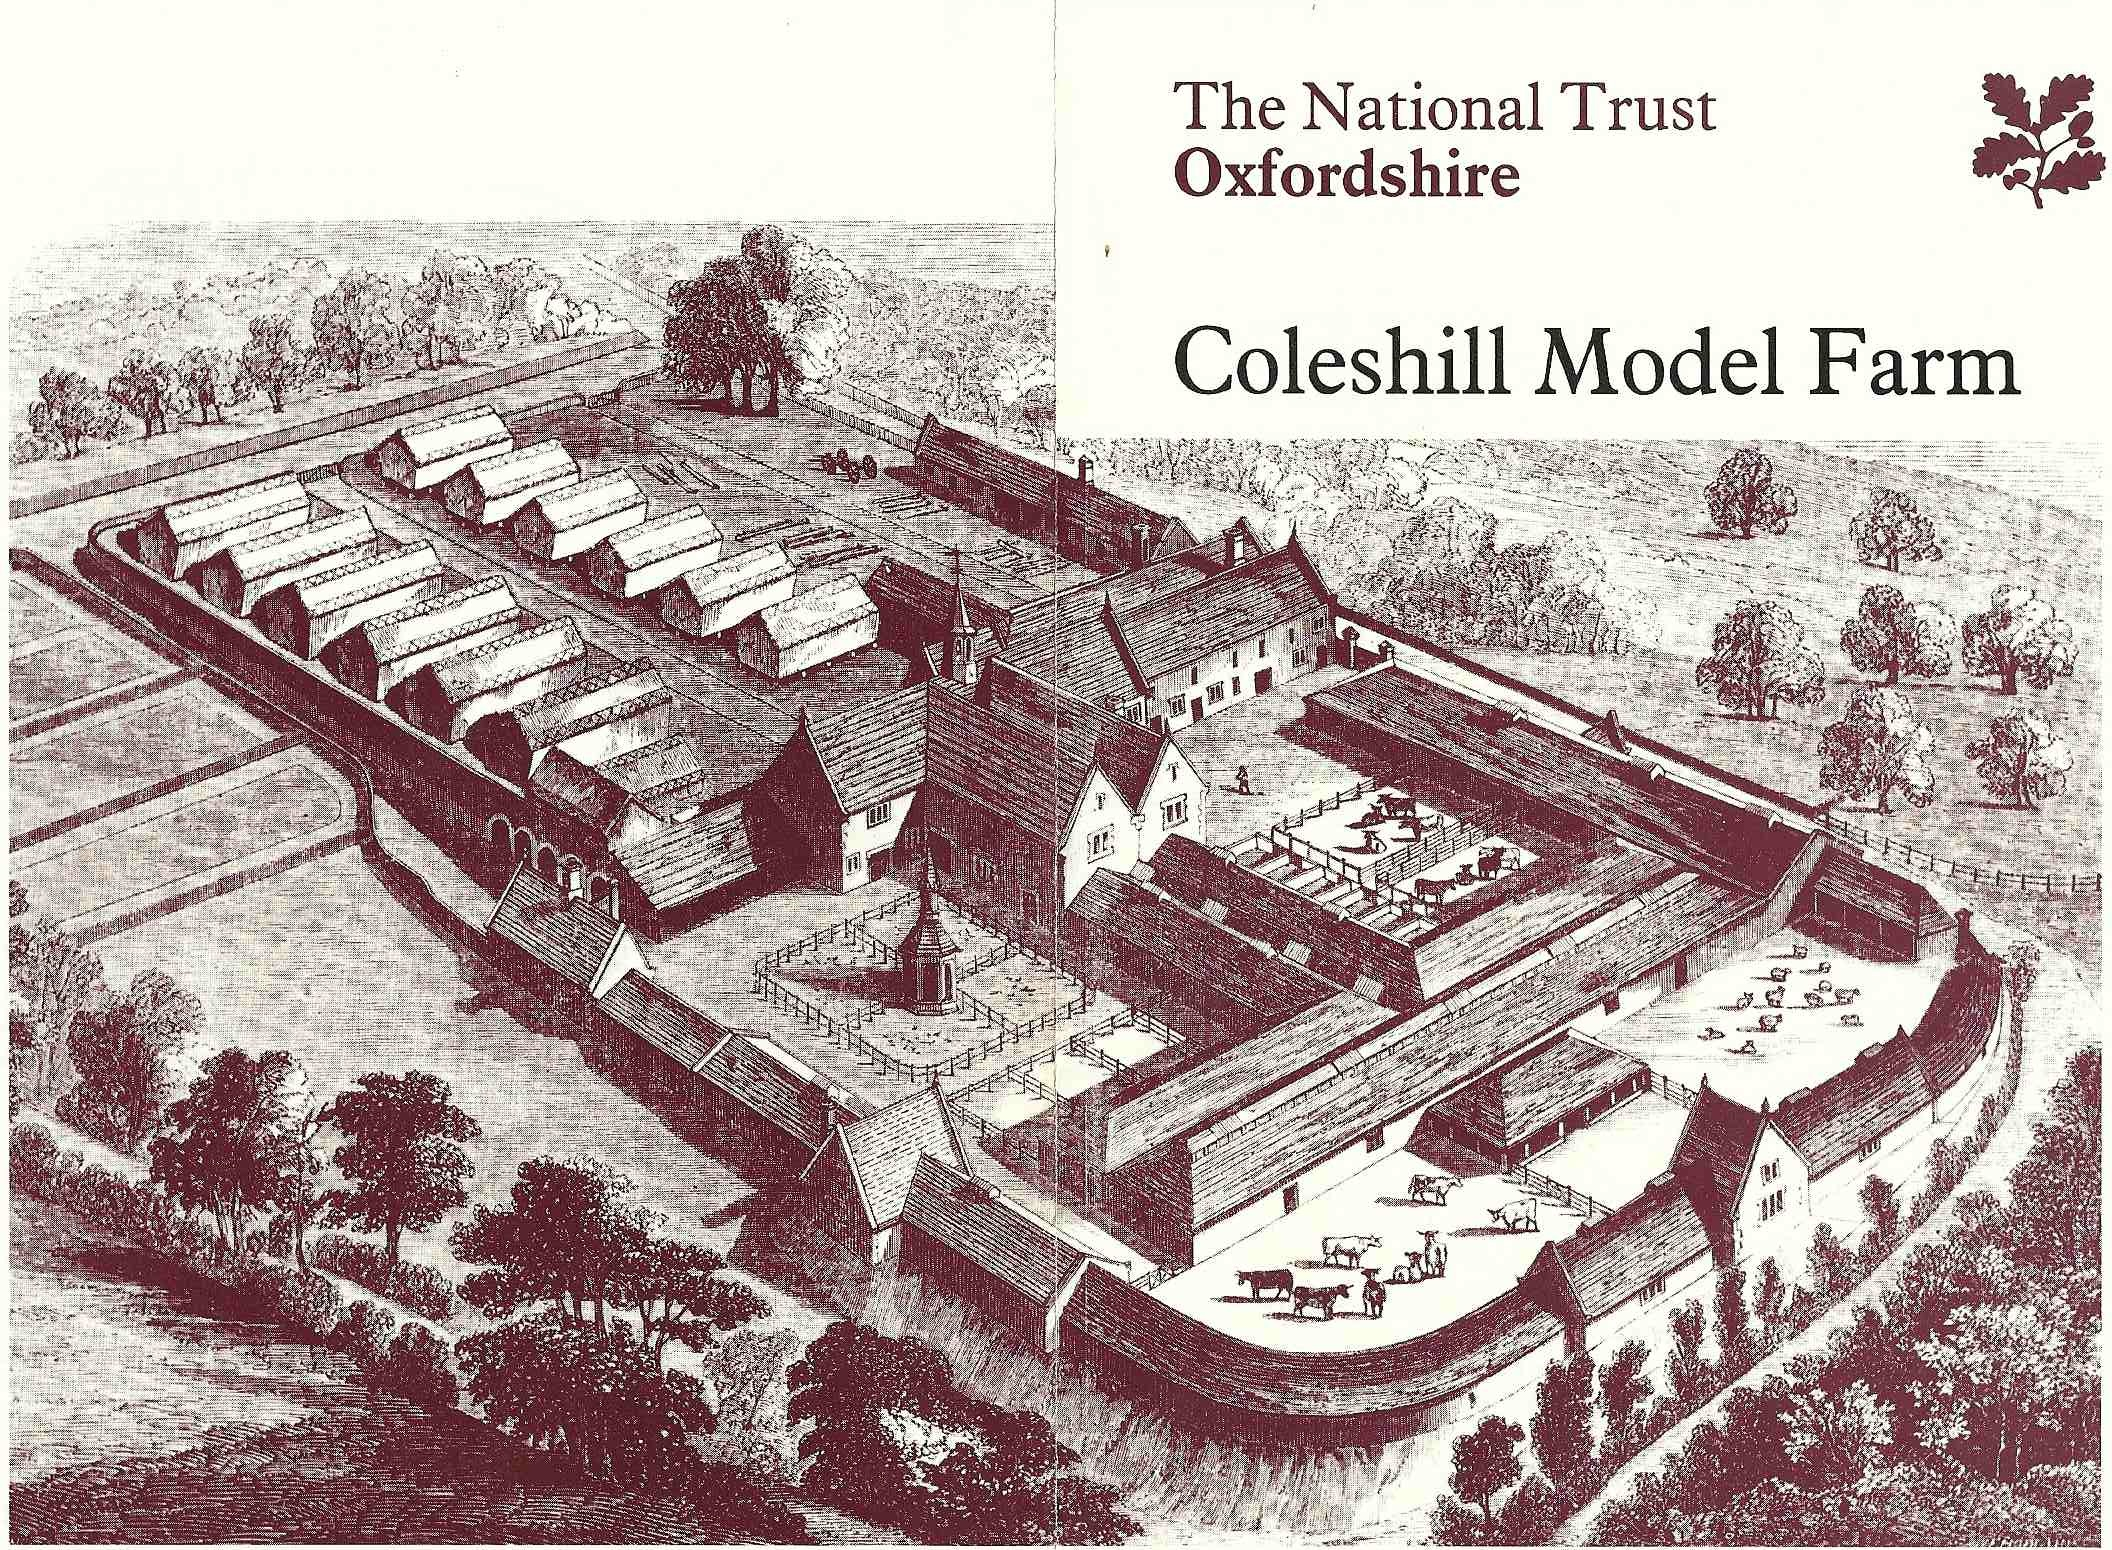 Layout of the Model Farm